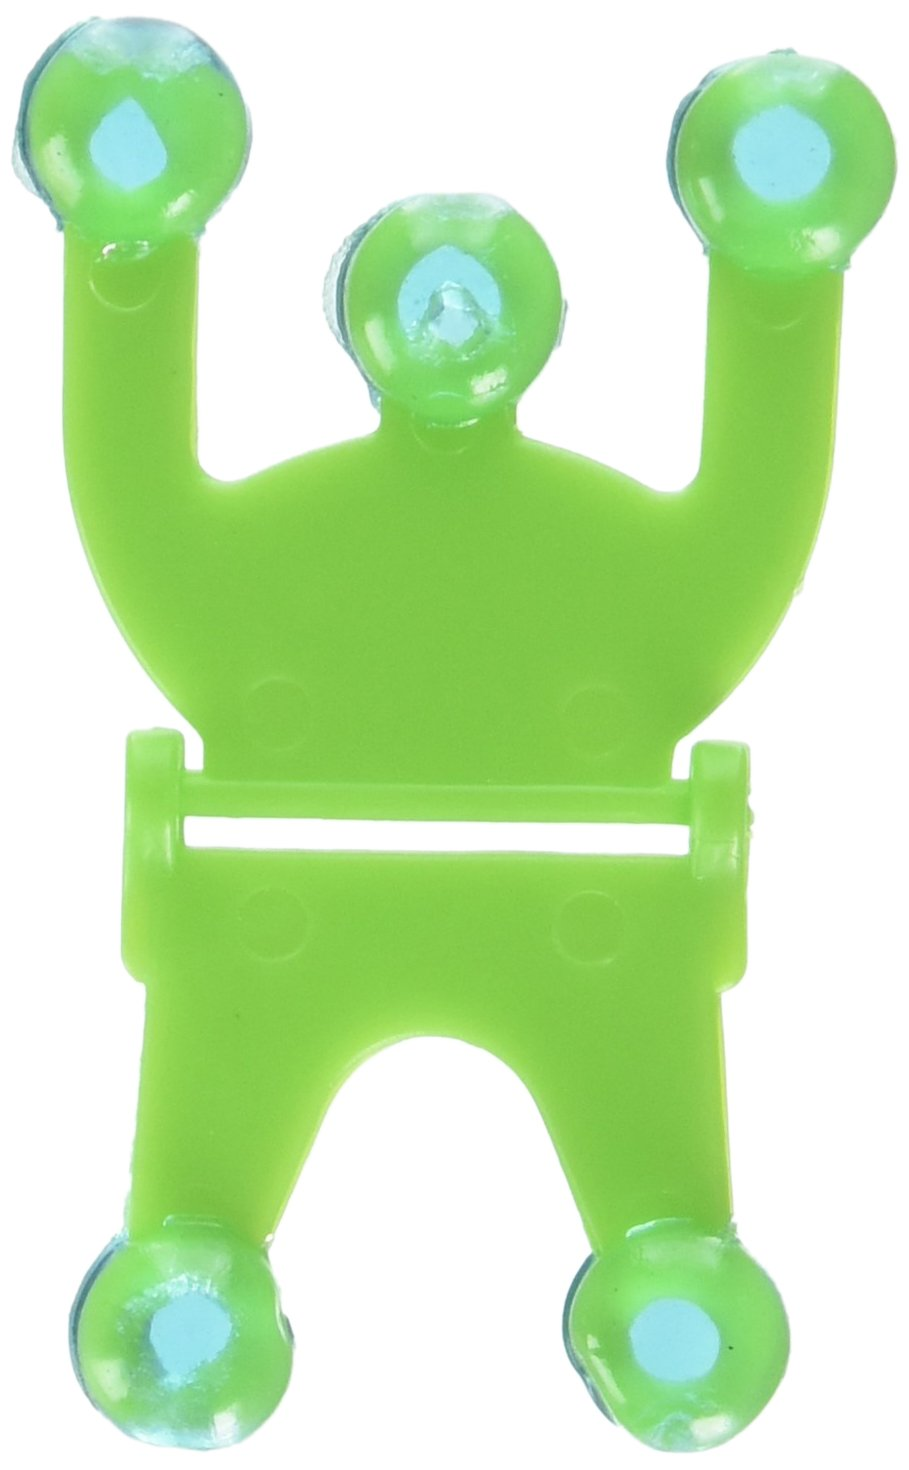 393327 Wall Climbers Party Favor TradeMart Inc